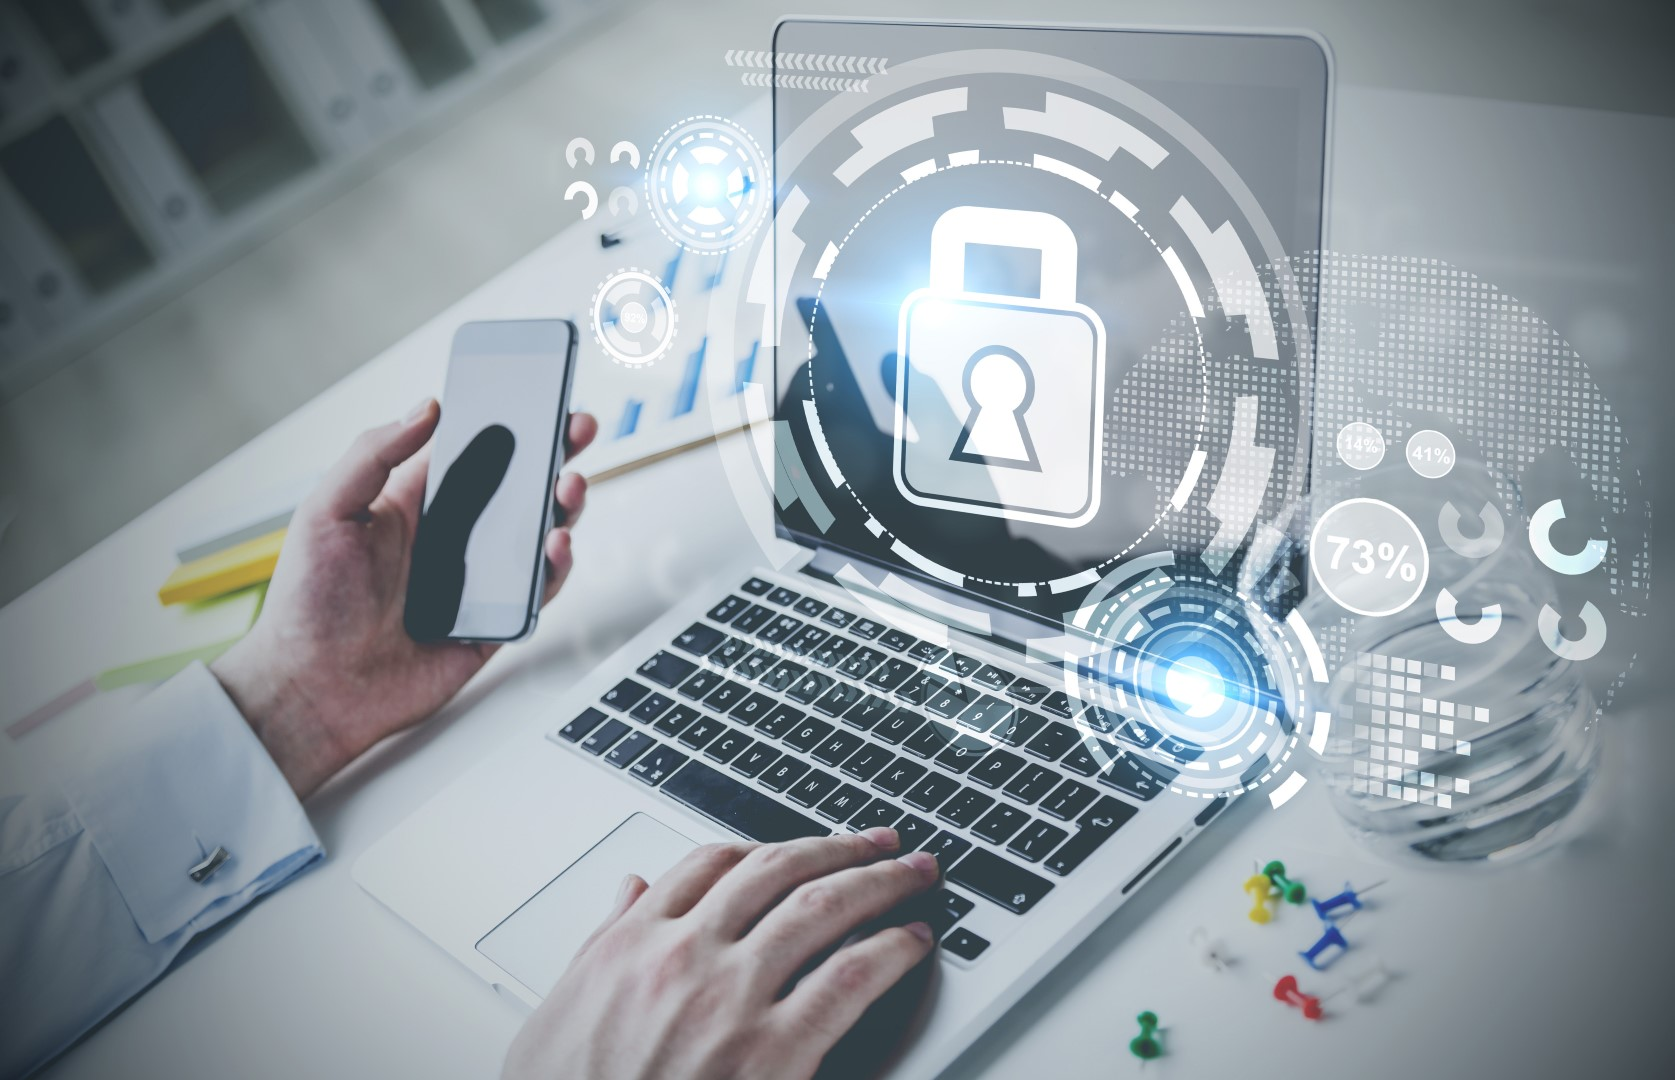 NY to require banks, insurers to take cybersecurity steps